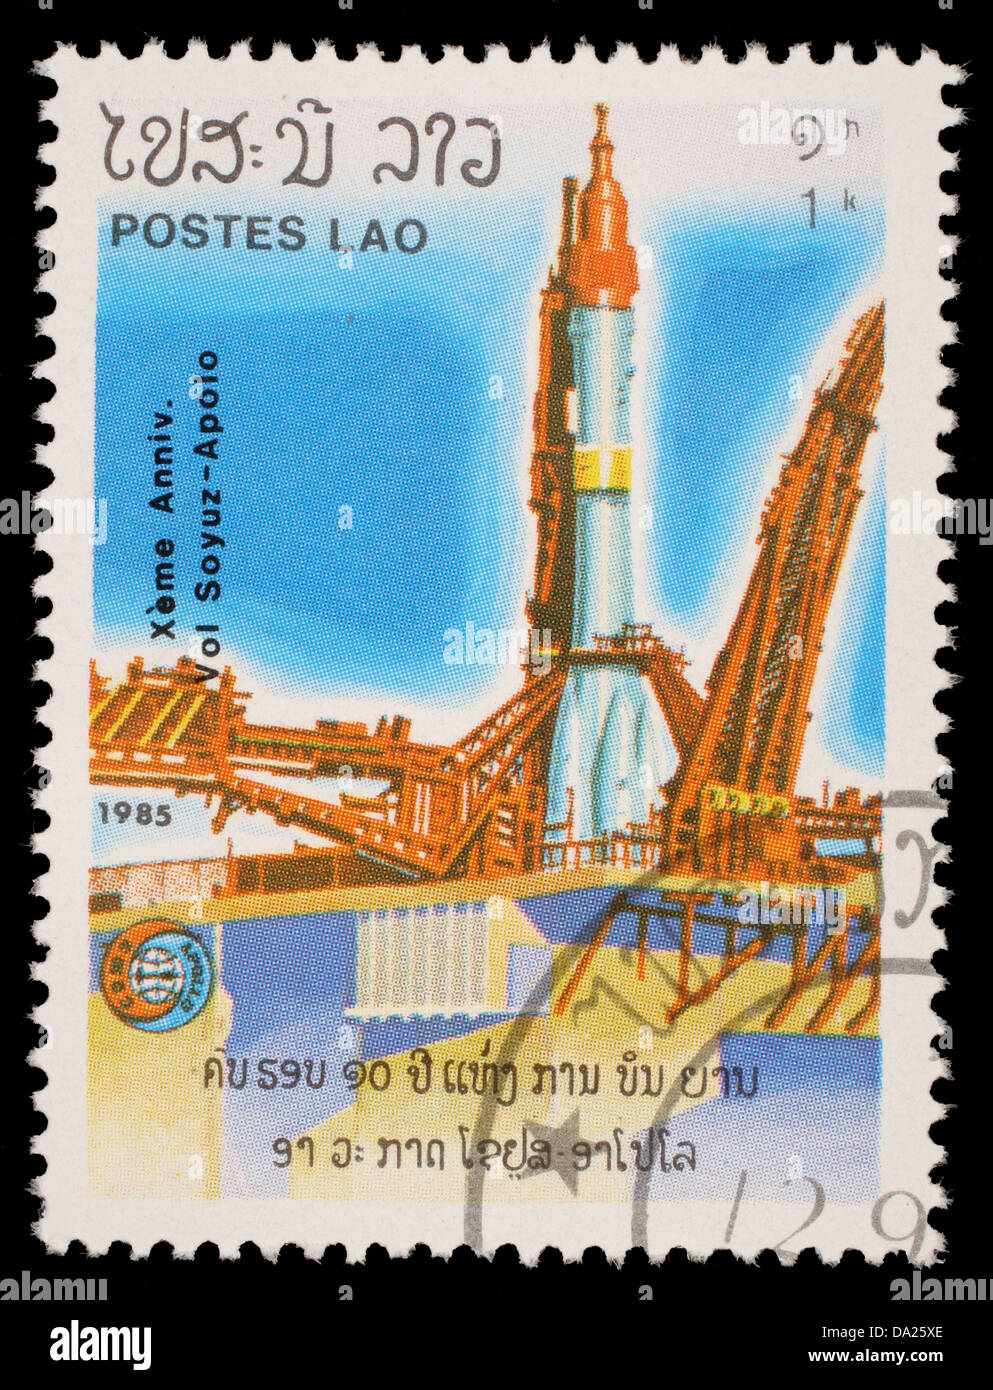 LAOS-CIRCA 1985: A stamp printed in the Laos, is pictured launching the spacecraft Apollo Program Apollo-Soyuz, - Stock Image